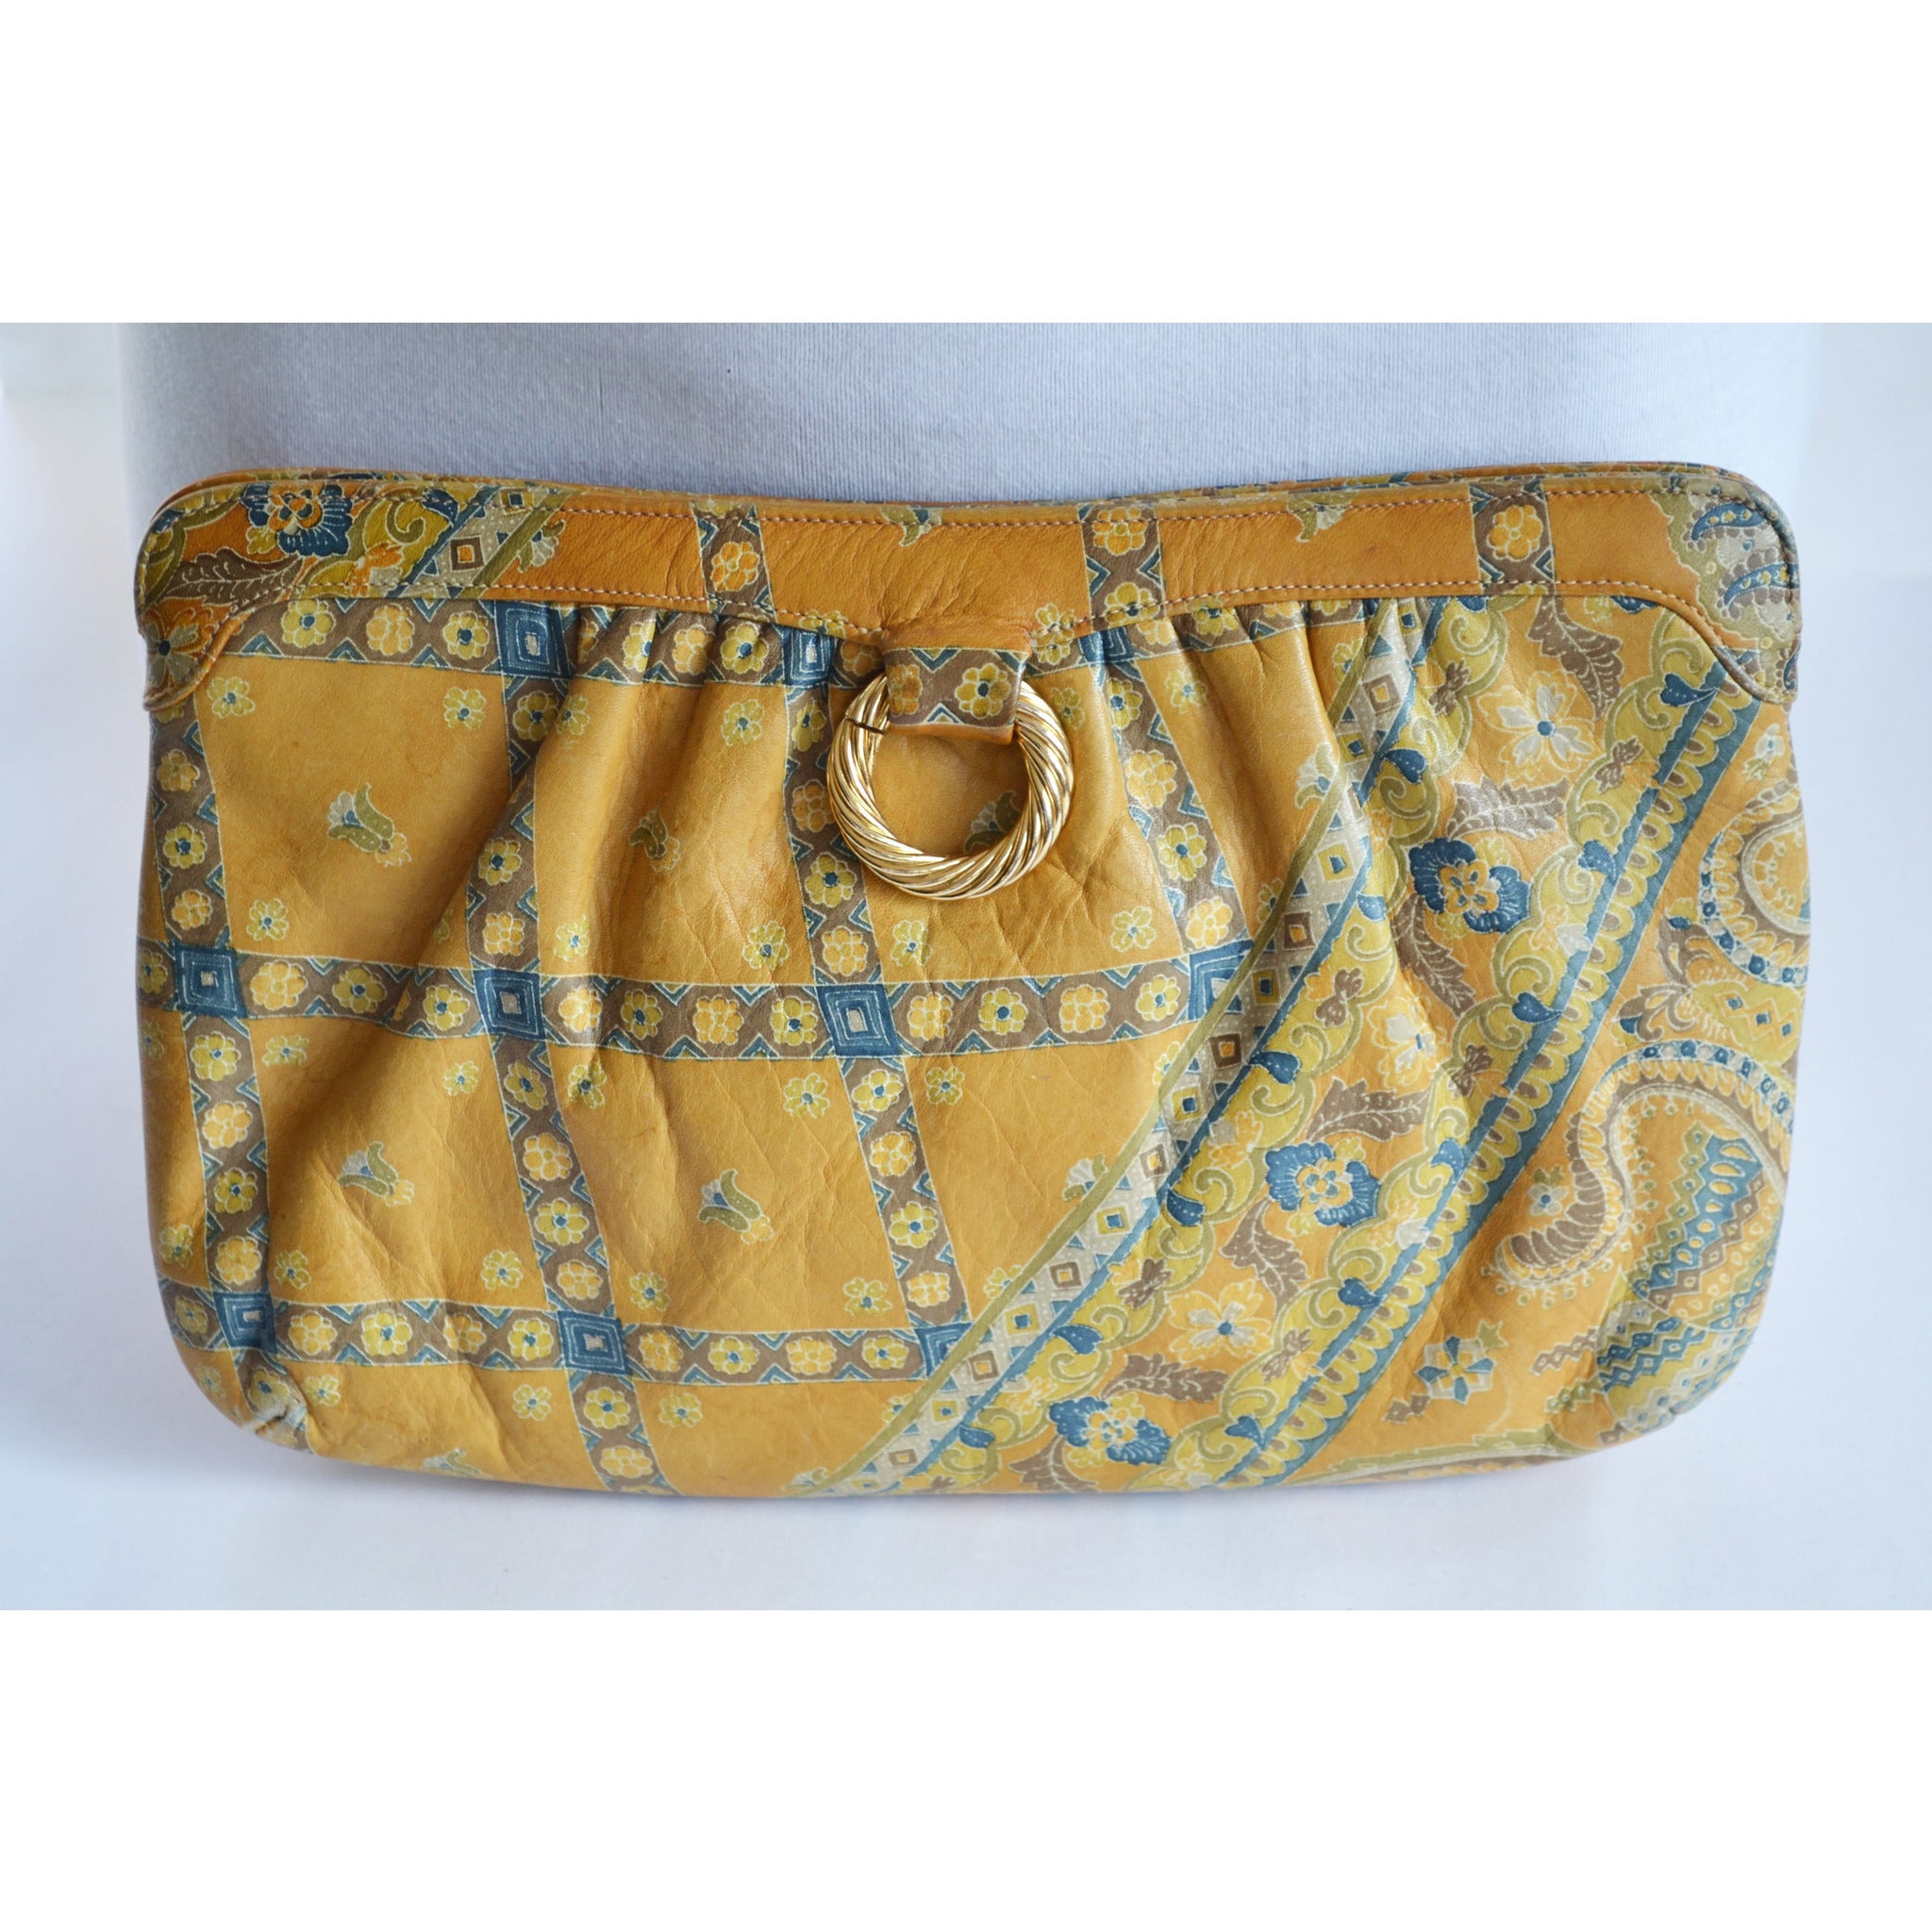 Vintage Paisley Leather Clutch Purse By Morris Moskowitz